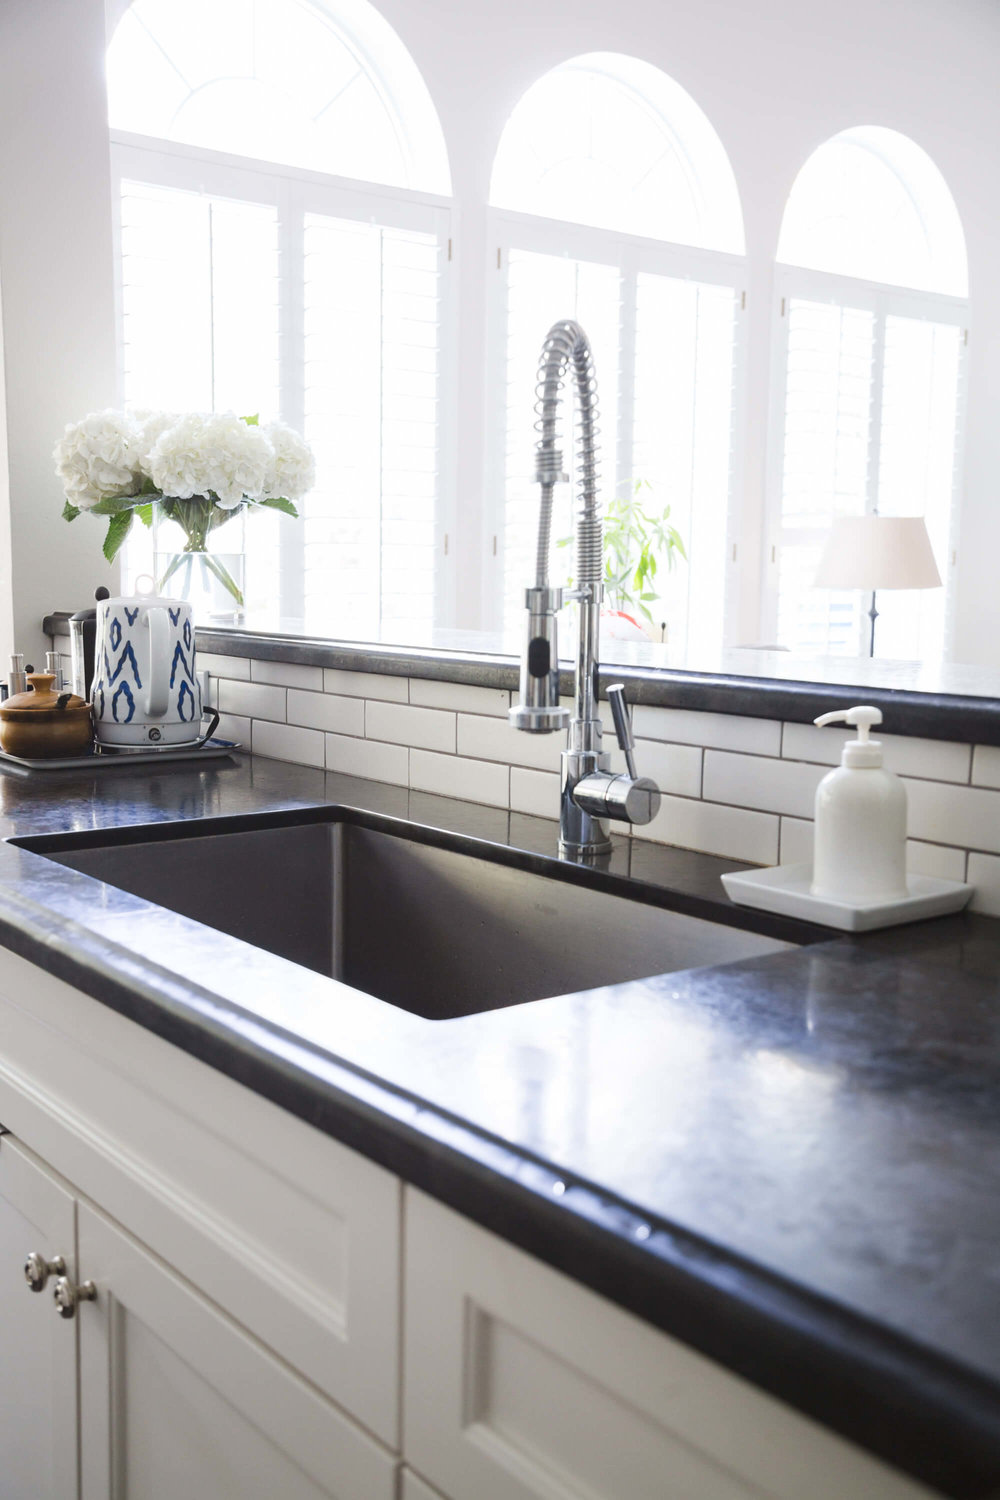 White kitchen with subway tile backsplash and pro style kitchen faucet, Designer: Carla Aston